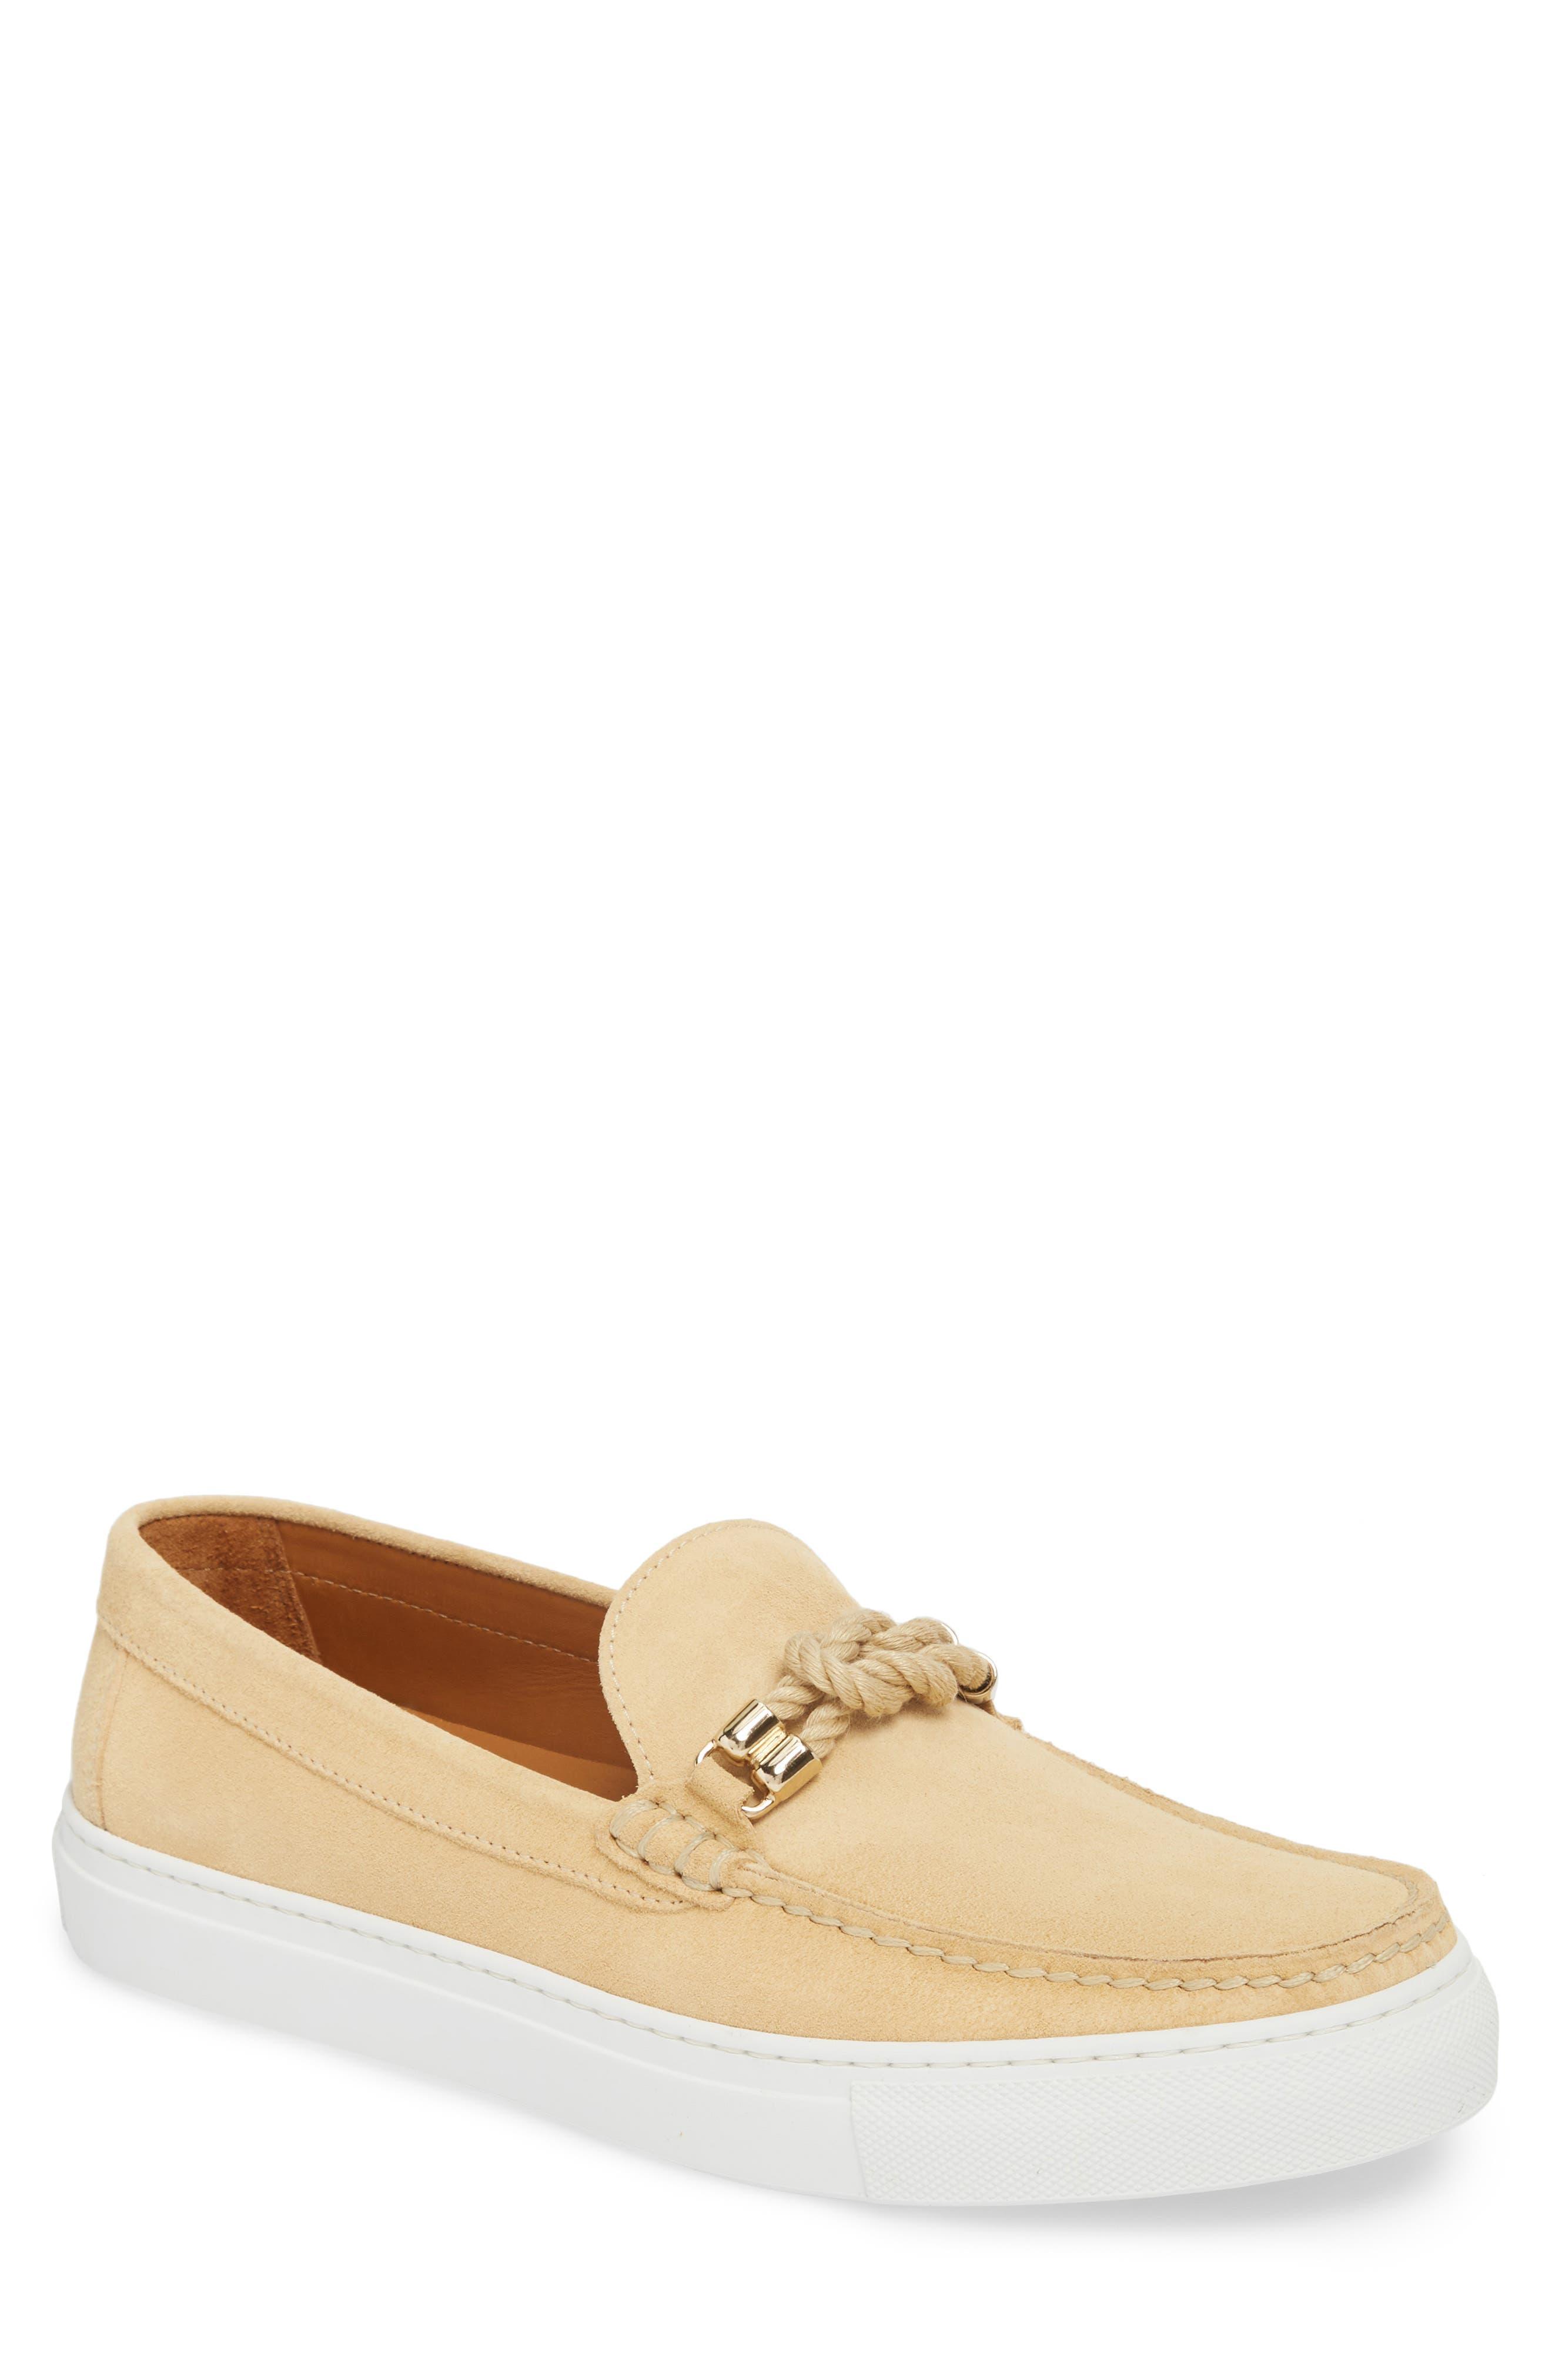 Bitton Square Knot Loafer,                             Main thumbnail 1, color,                             Beige Suede